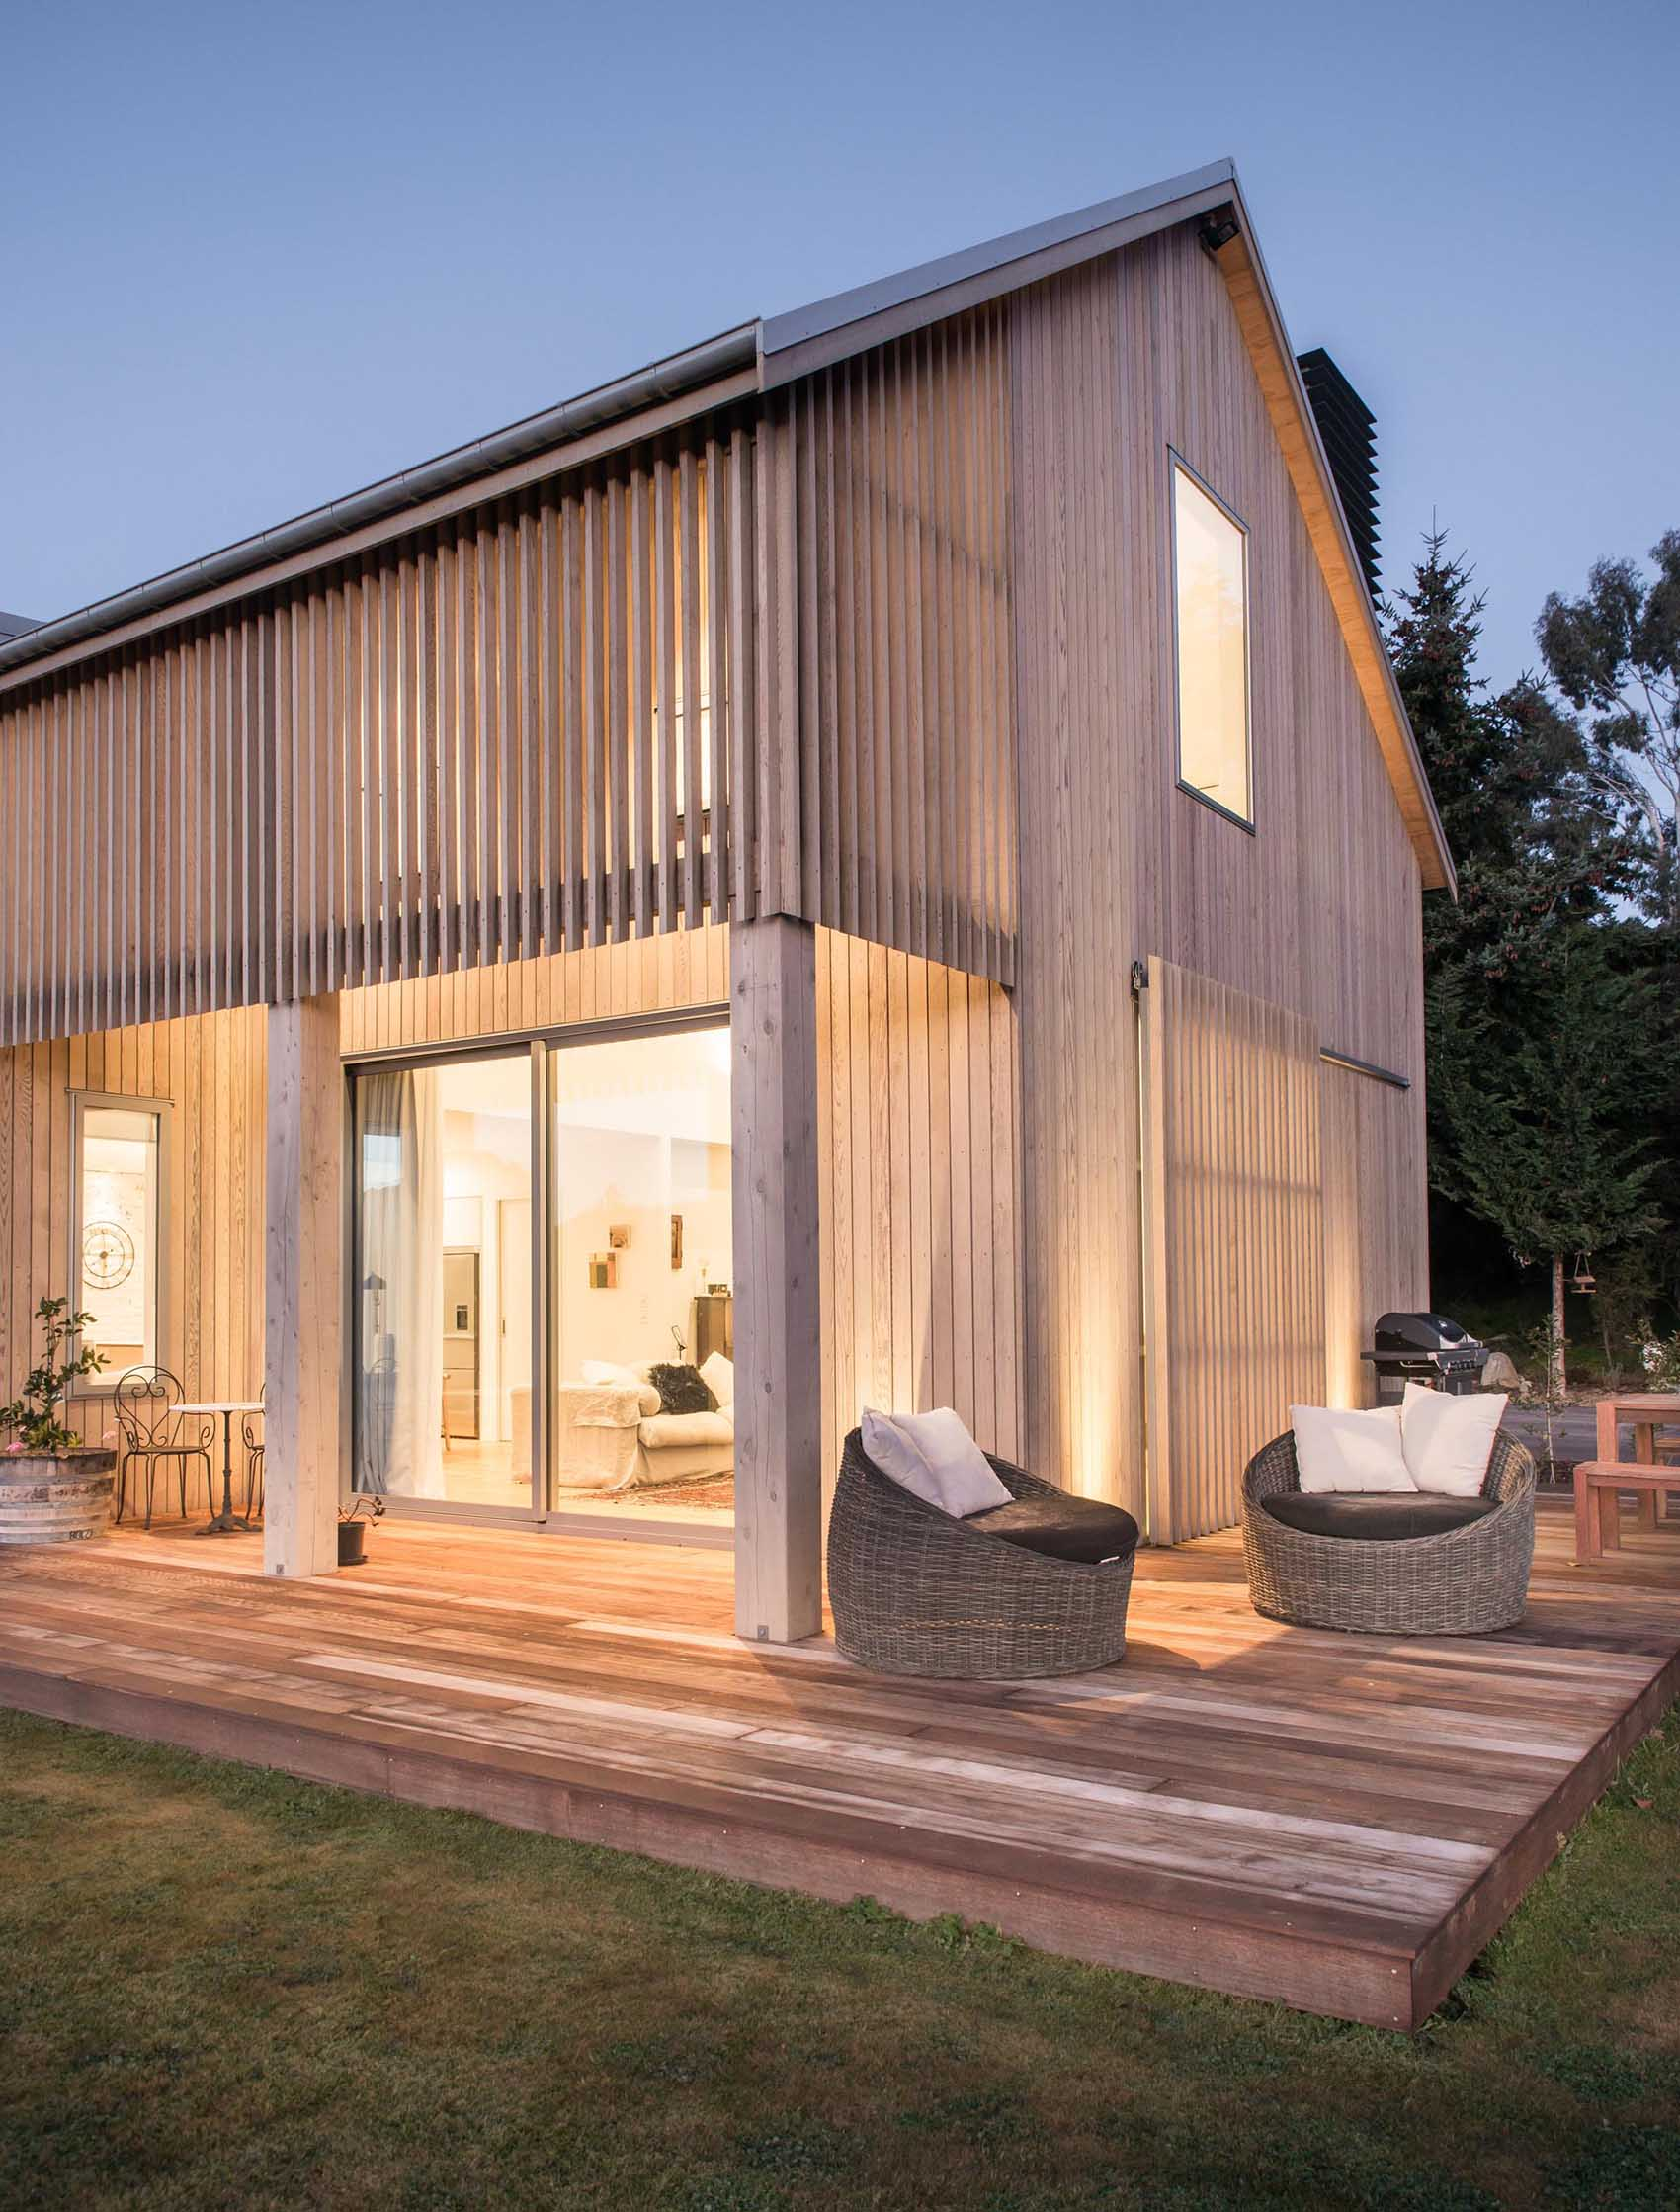 A contemporary barn-inspired home  with wood cladding and a wrap around deck.